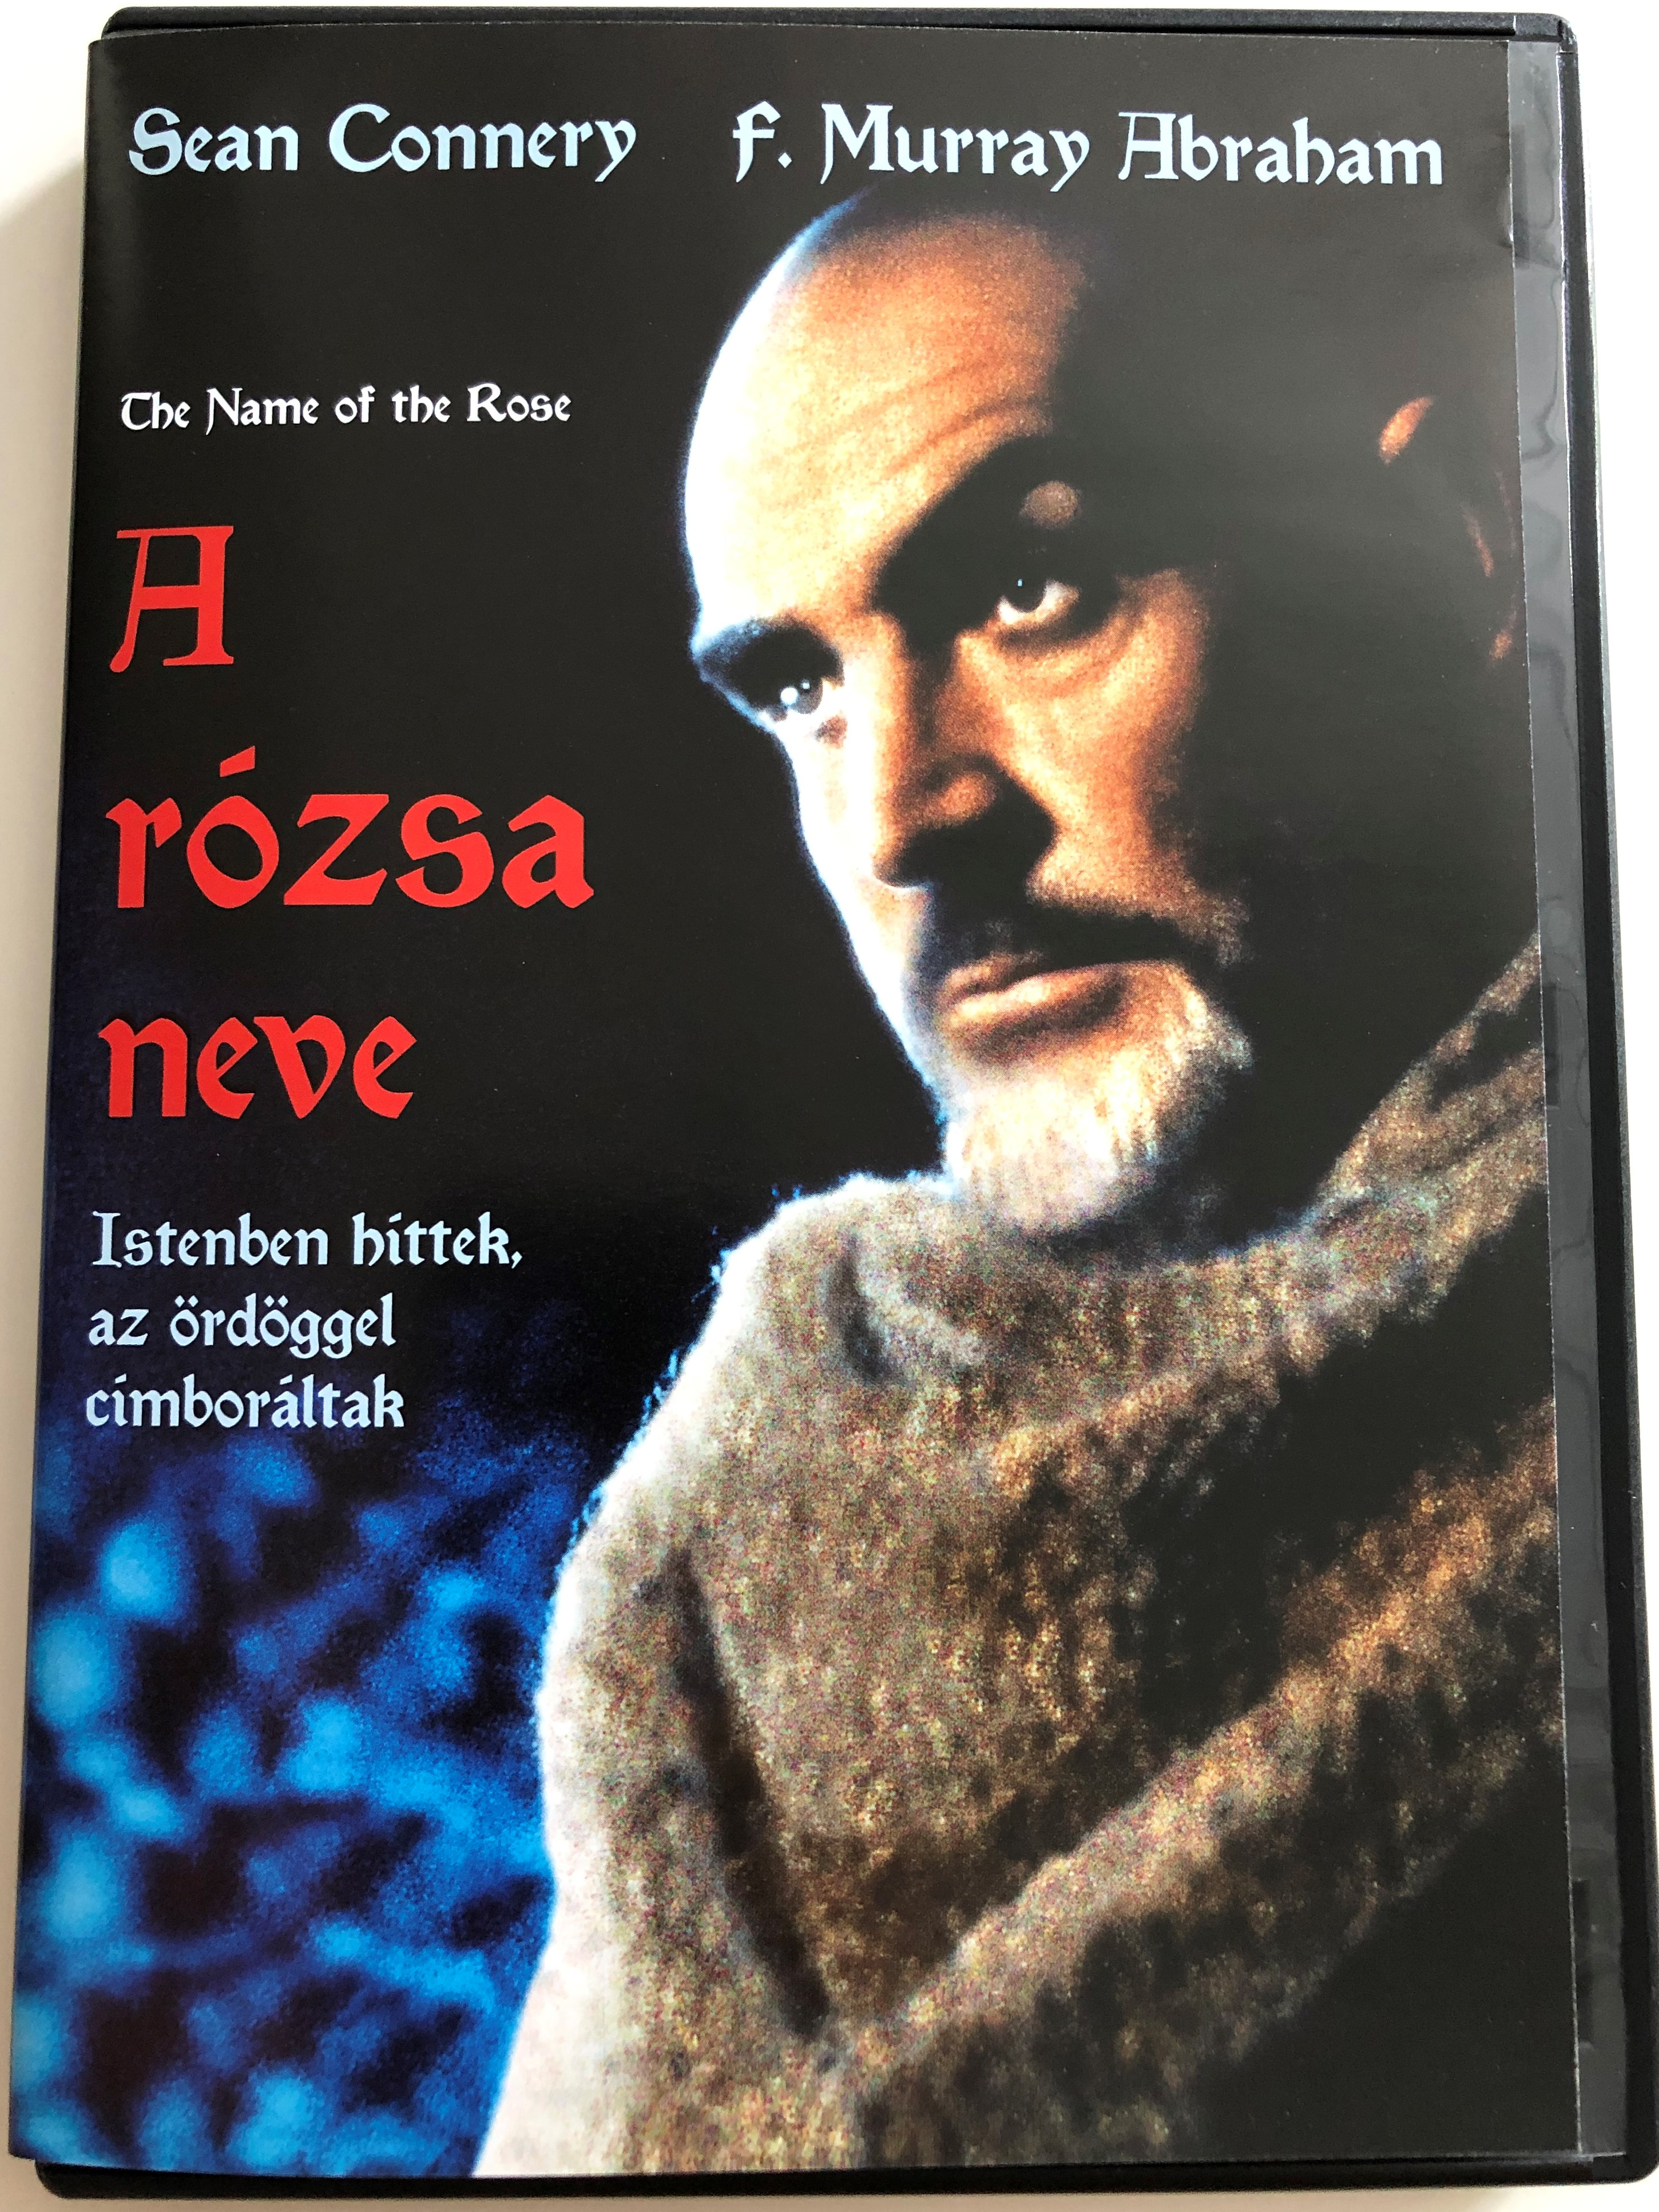 the-name-of-the-rose-dvd-1986-a-r-zsa-neve-directed-by-jean-jacques-annaud-starring-sean-connery-f.-murray-abraham-feodor-chaliapin-jr.-based-on-umberto-eco-s-novel-1-.jpg